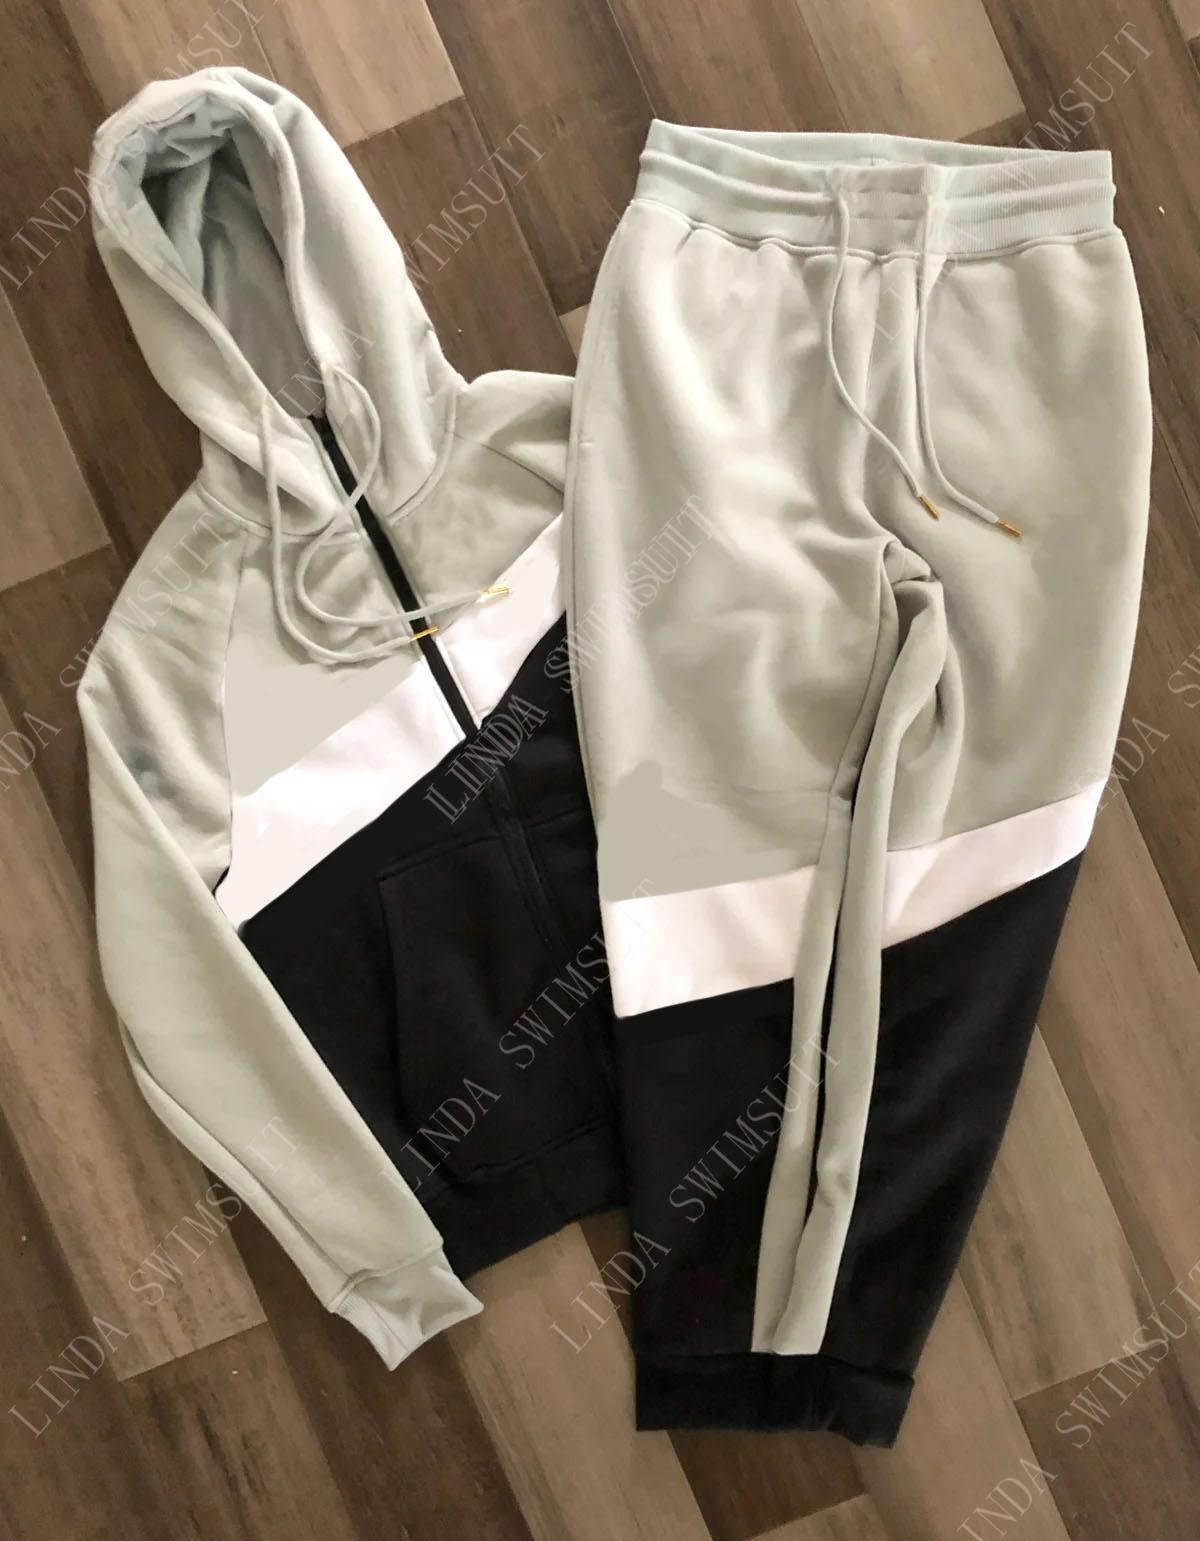 Sweats à capuche Sweats à capuche Sweatsuits Logo Imprimer Mens Hommes Casual Street Street Streetwear Pull Sweat-shirt Longues manches manches manches longues et pantalons Hoodi Polyeste